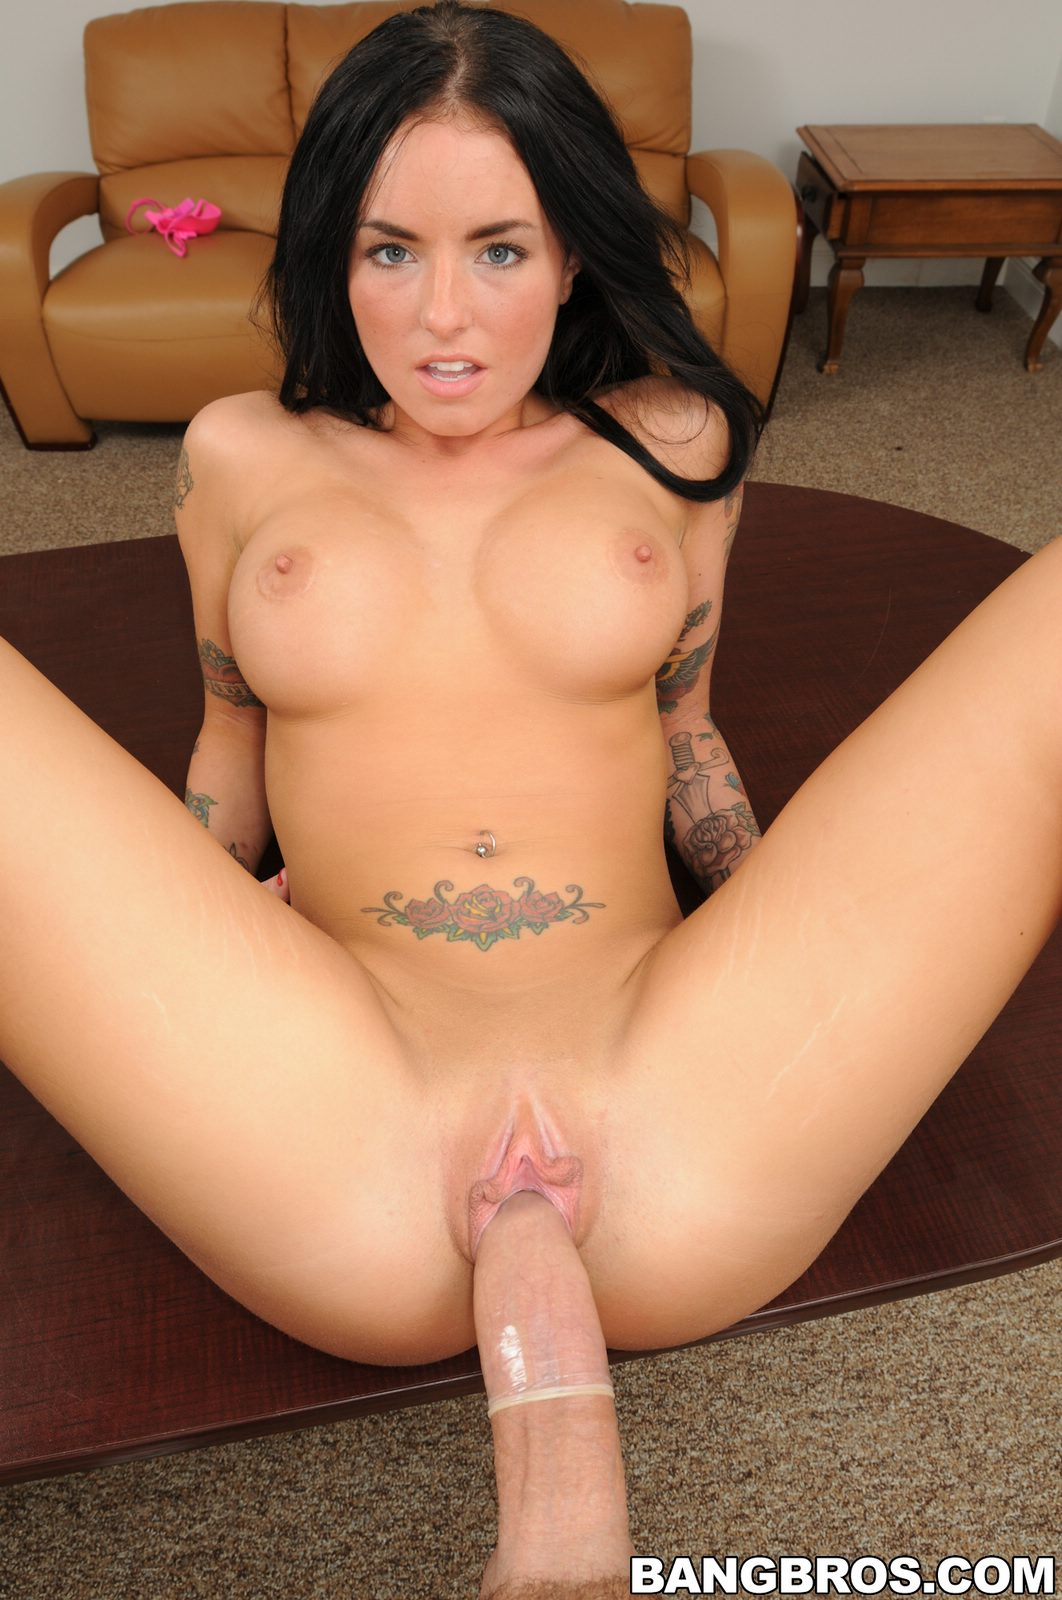 Christy mack and sophie dee having fun 3